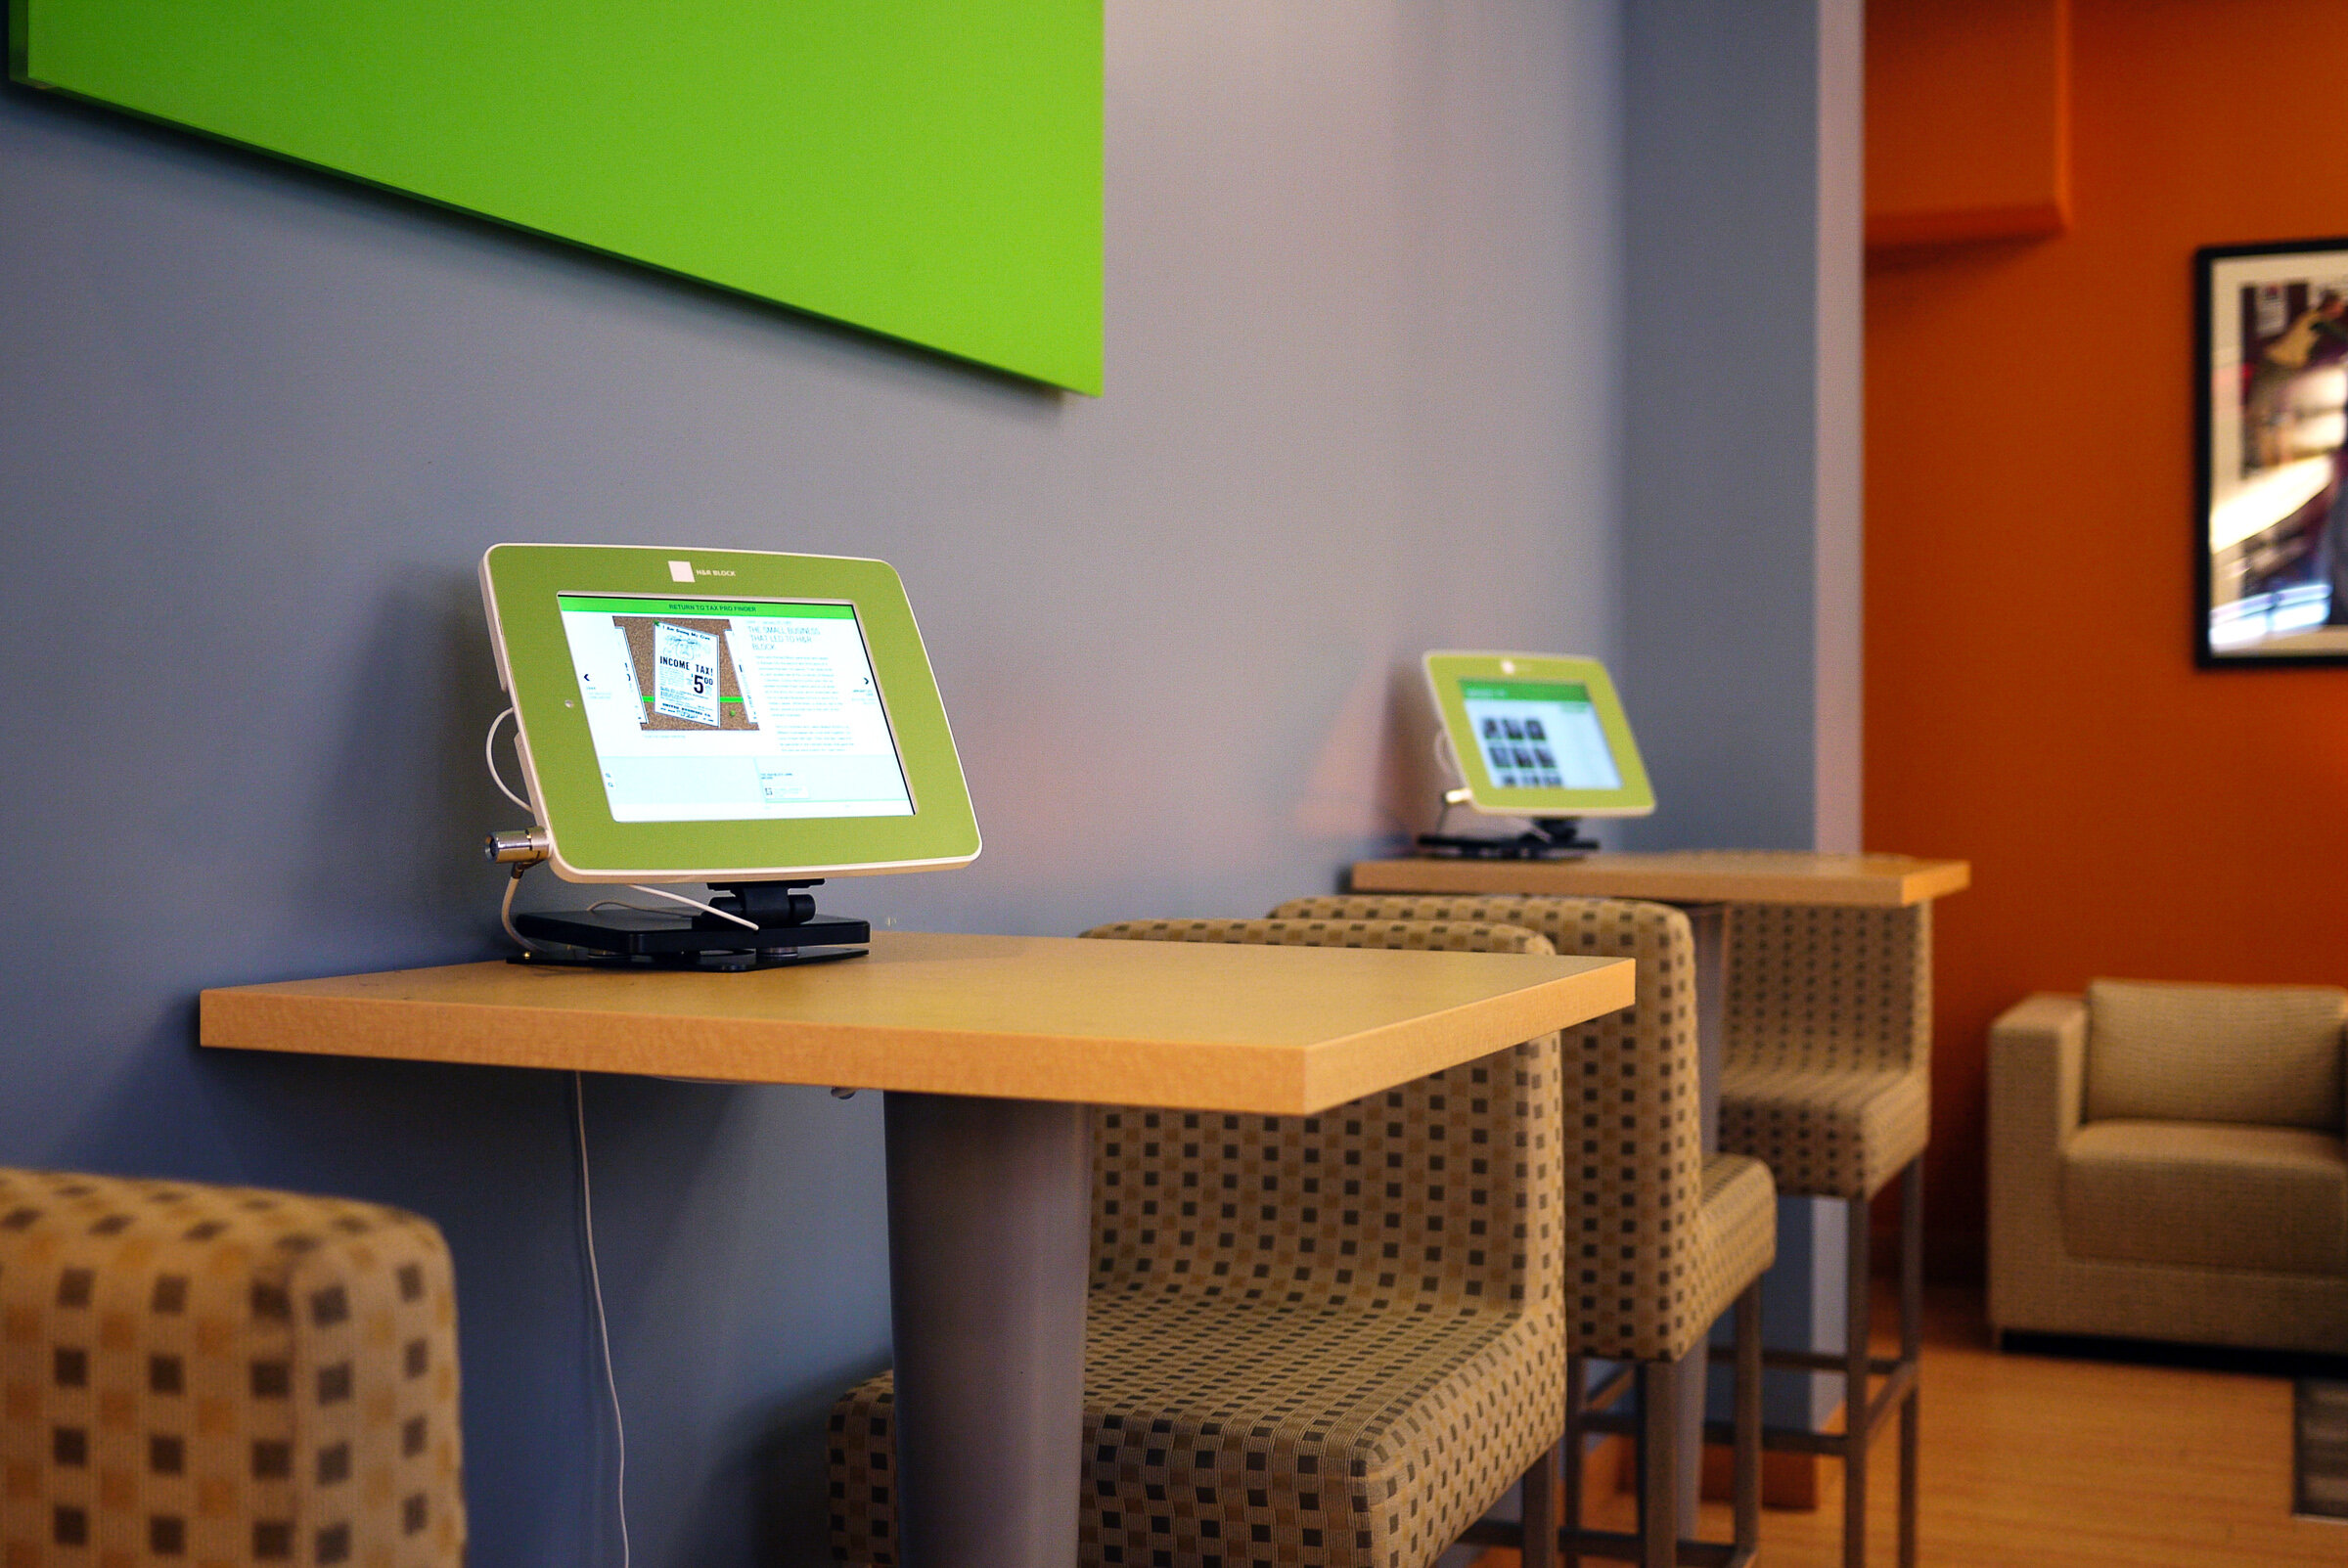 Interactive App Kiosks  — The iPad kiosks are secured to two cafe tables in the lobby.